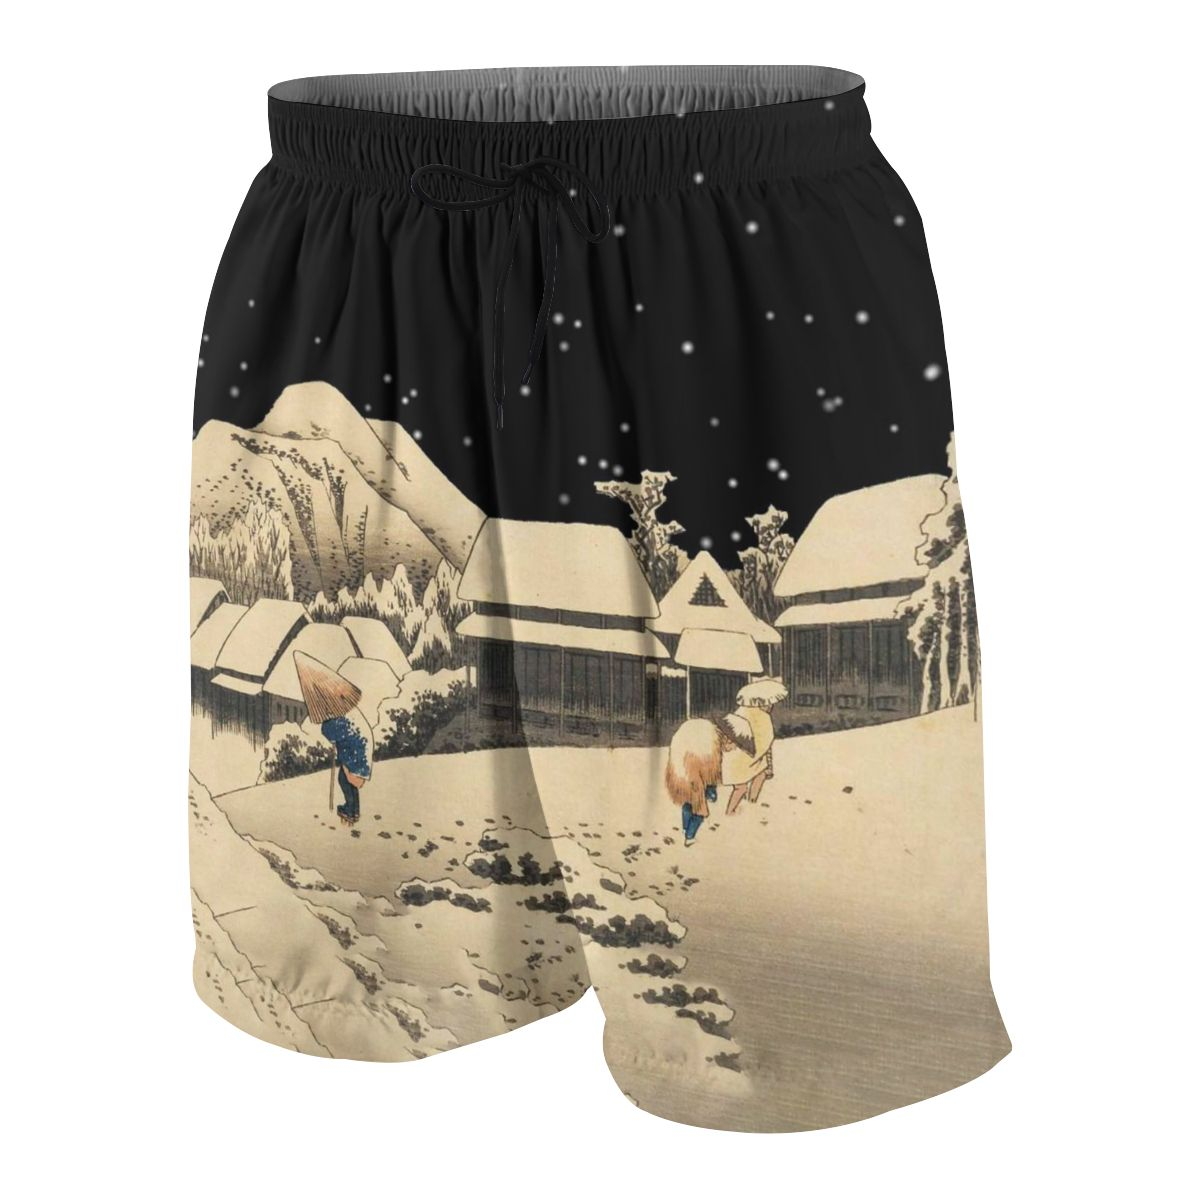 Weezer Pinkerton Summer Young Shorts Cotton For Beach Short Sports Pants 3D Print Elastic Fashion Wild Leisure